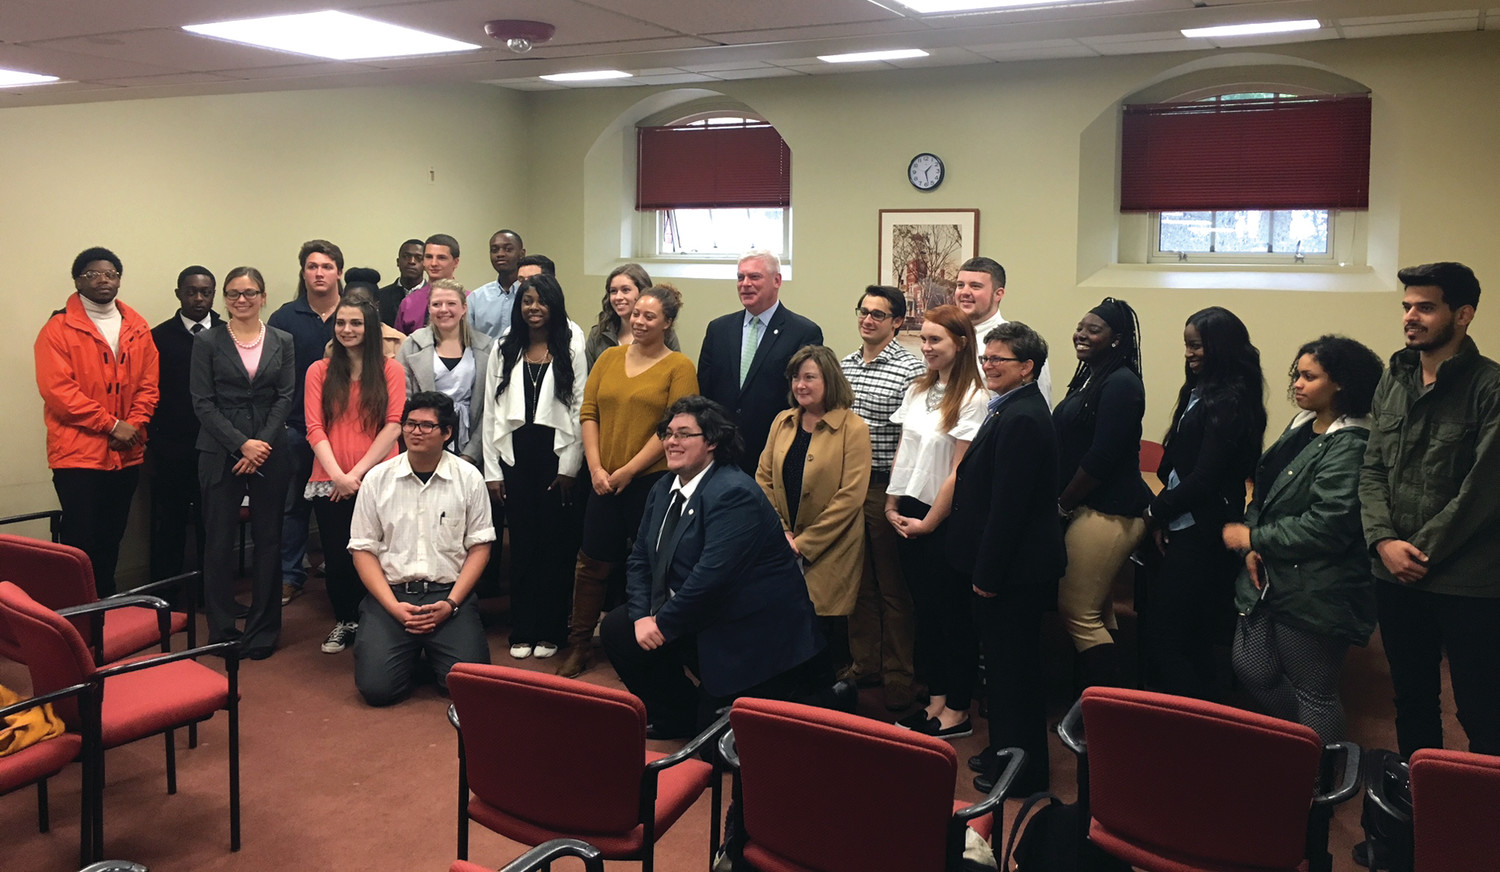 GROUP THINK: The students of the Johnson & Wales Intro to Political Science class poses with Mayor Avedisian and city staff following their presentations at Warwick City Hall last Wednesday.